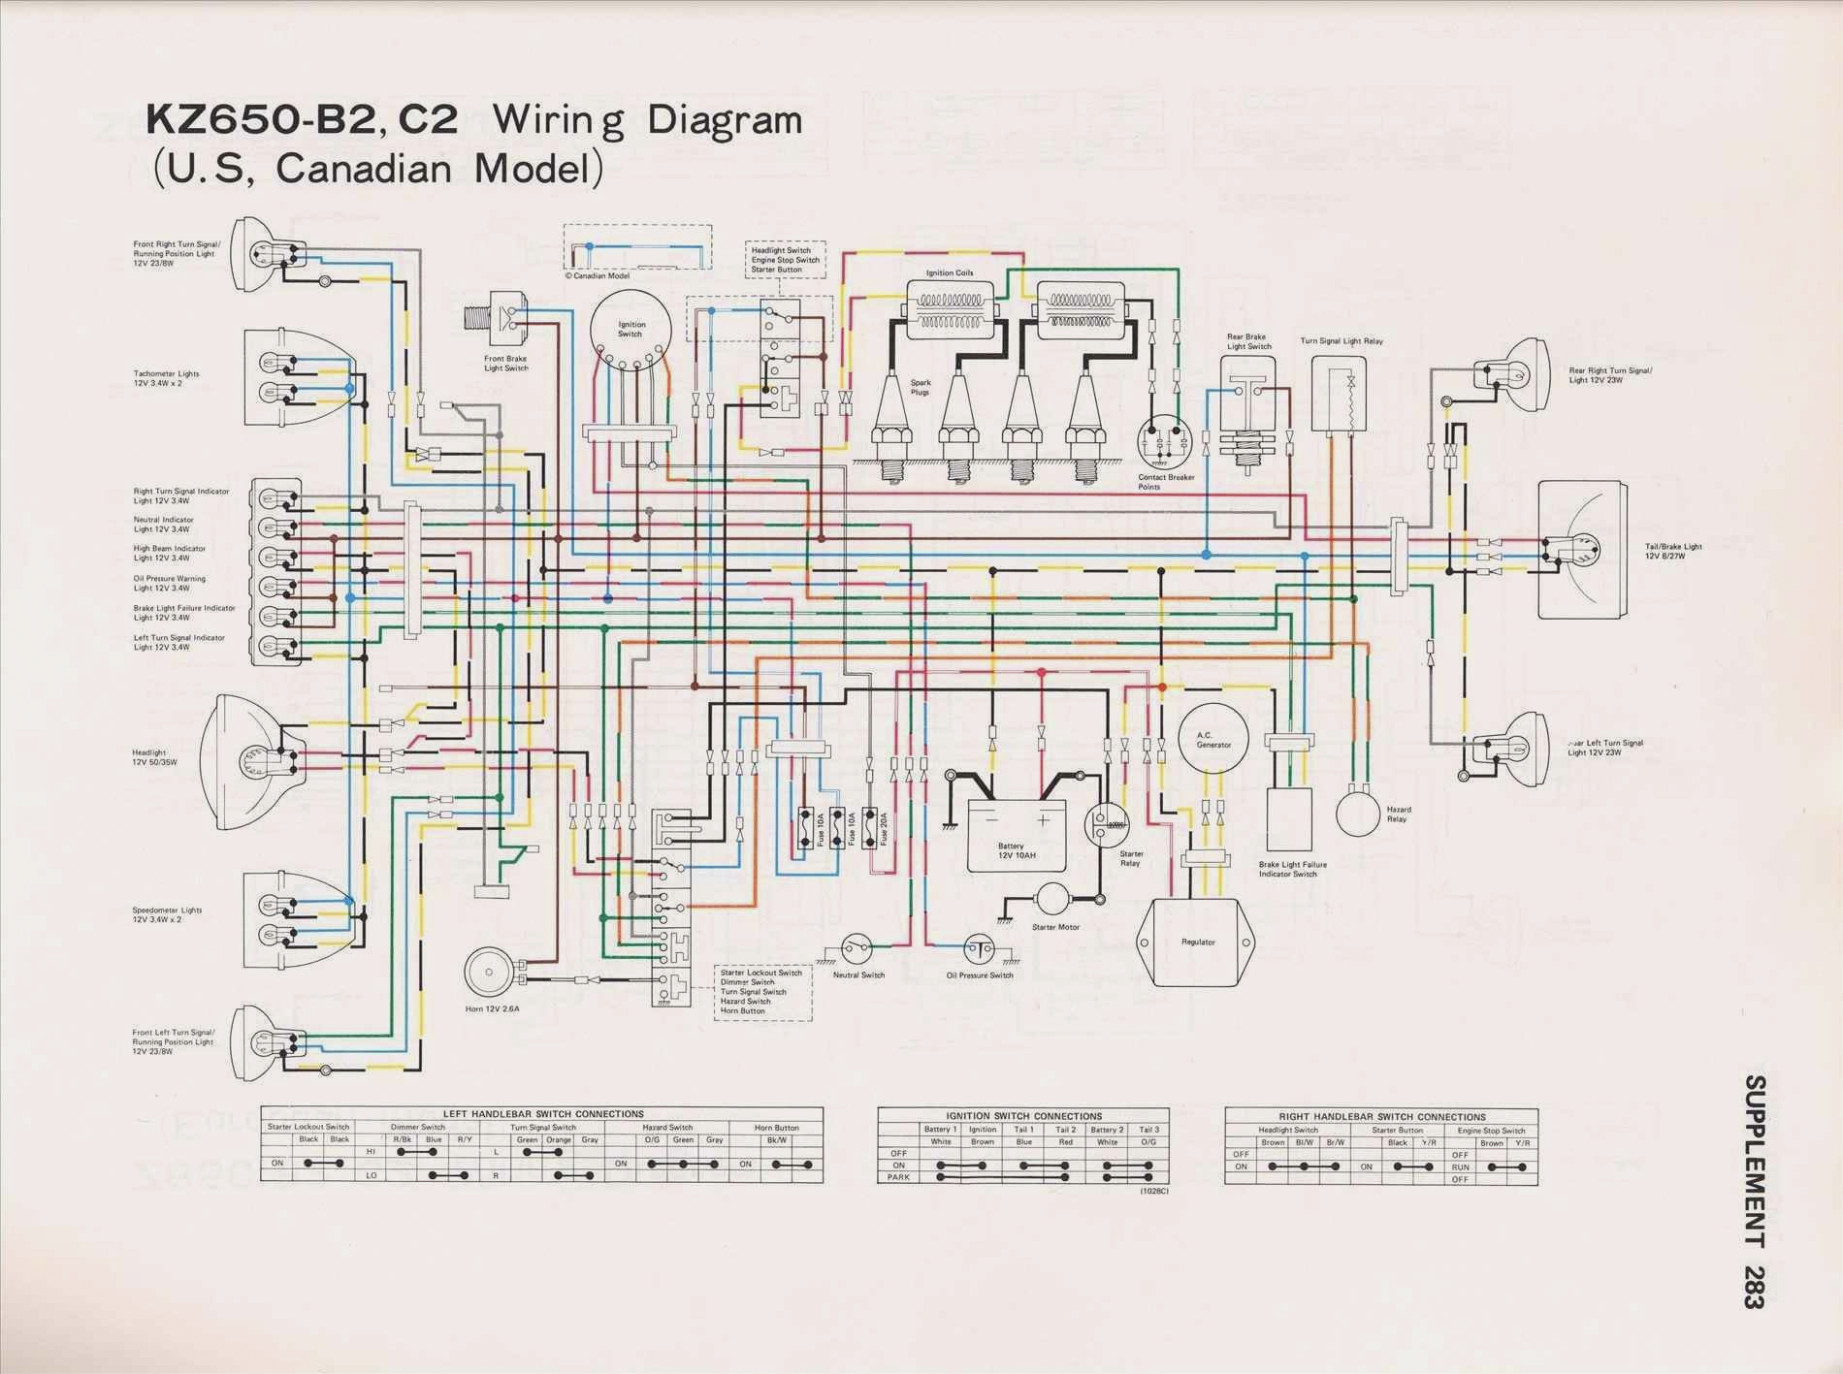 Peachy Wiring A Vintage Trailer Basic Electronics Wiring Diagram Wiring Cloud Rectuggs Outletorg